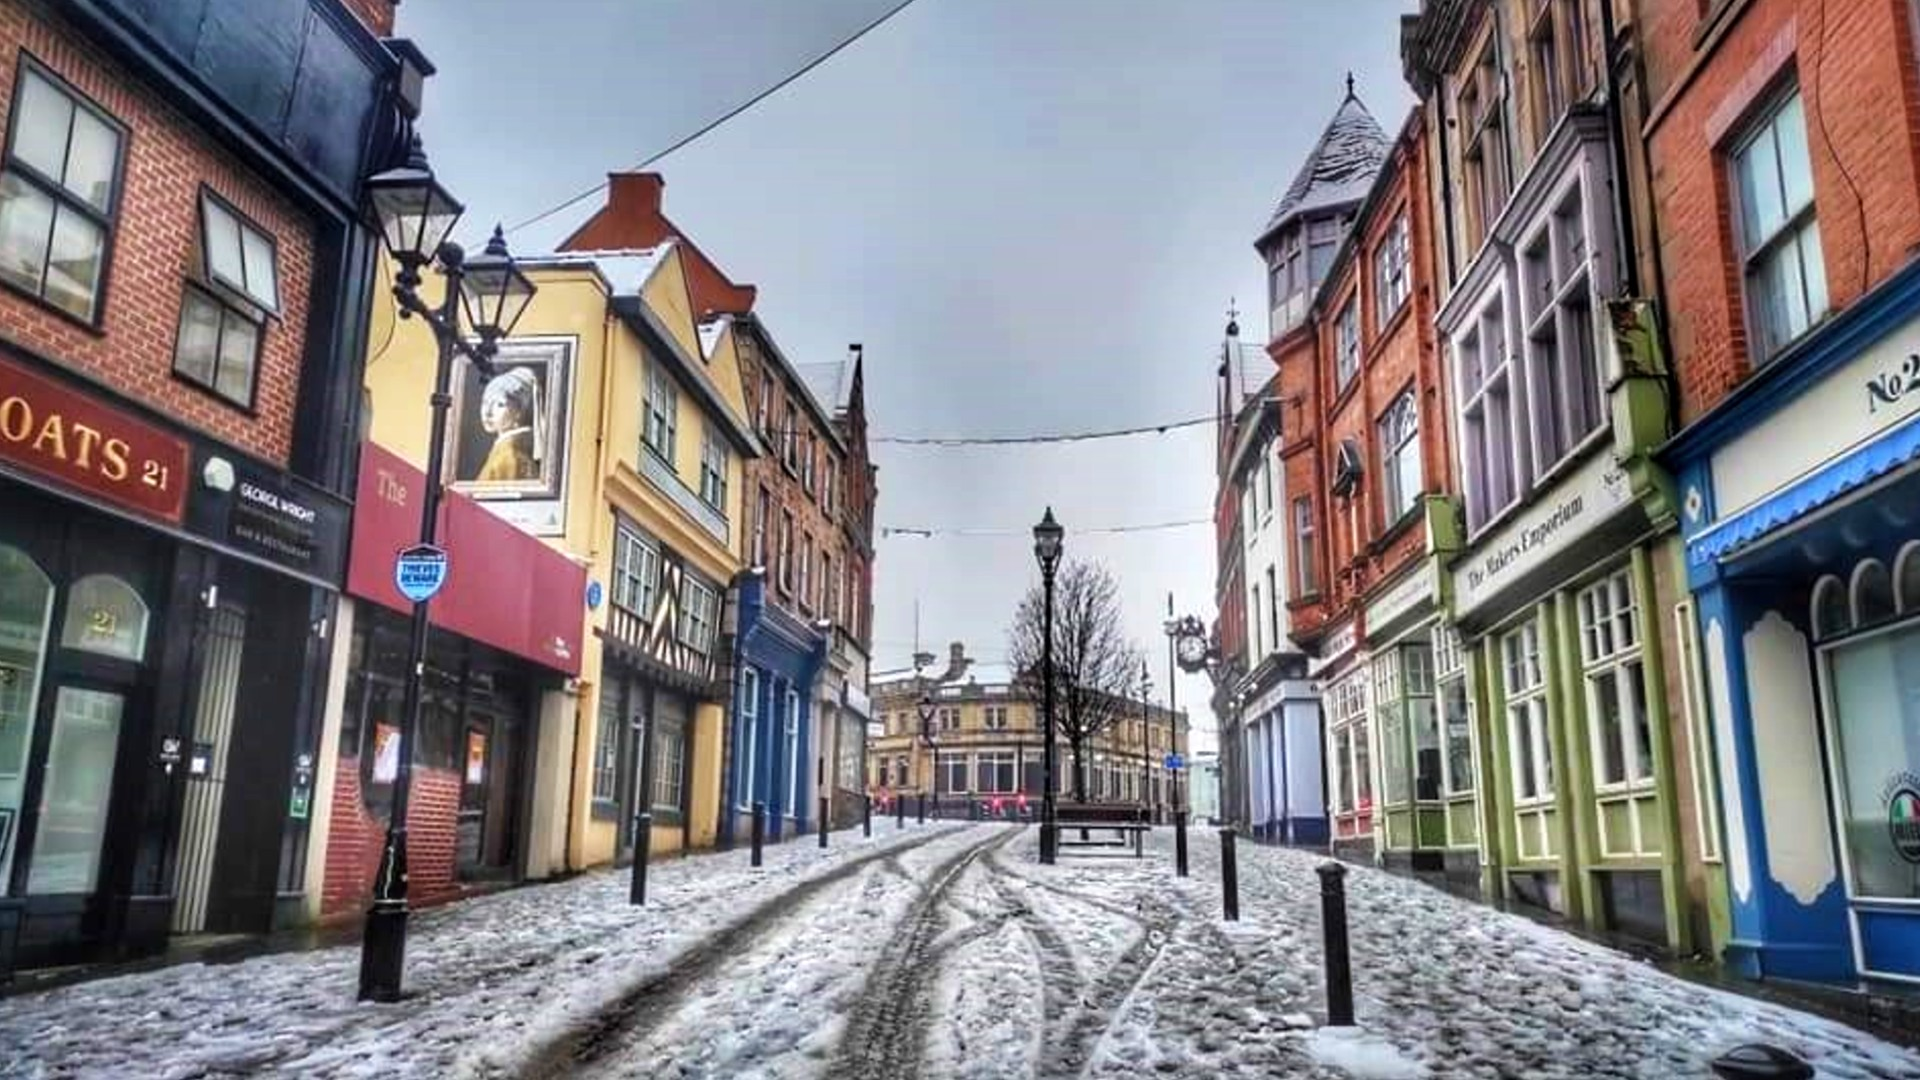 Rotherham High Street in the snow with shops on either side of the street